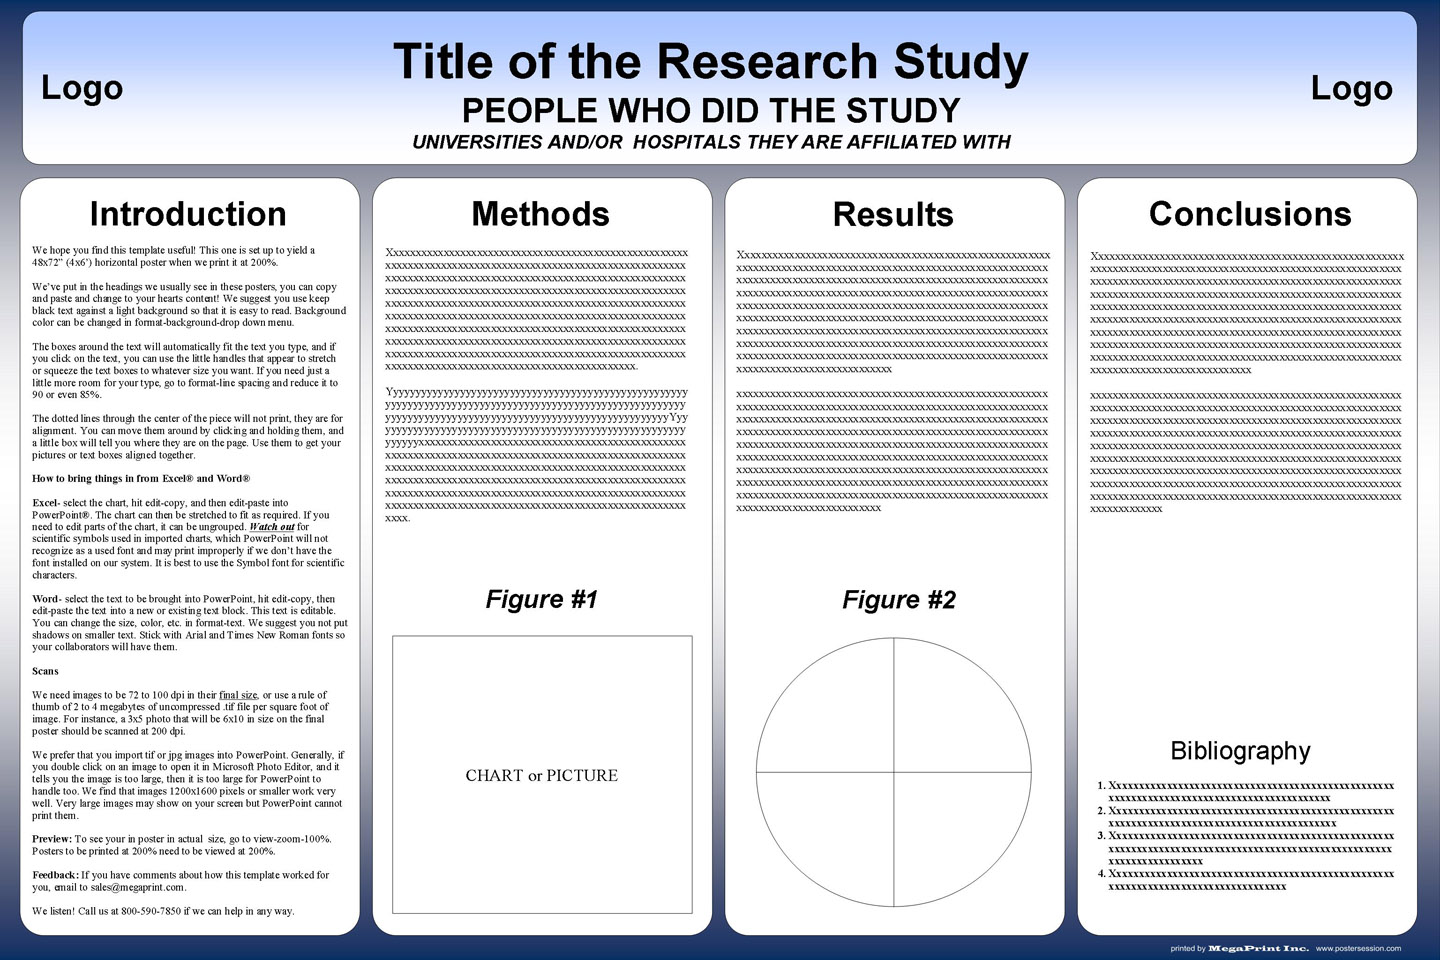 Free Powerpoint Scientific Research Poster Templates for Printing – Template Poster Free